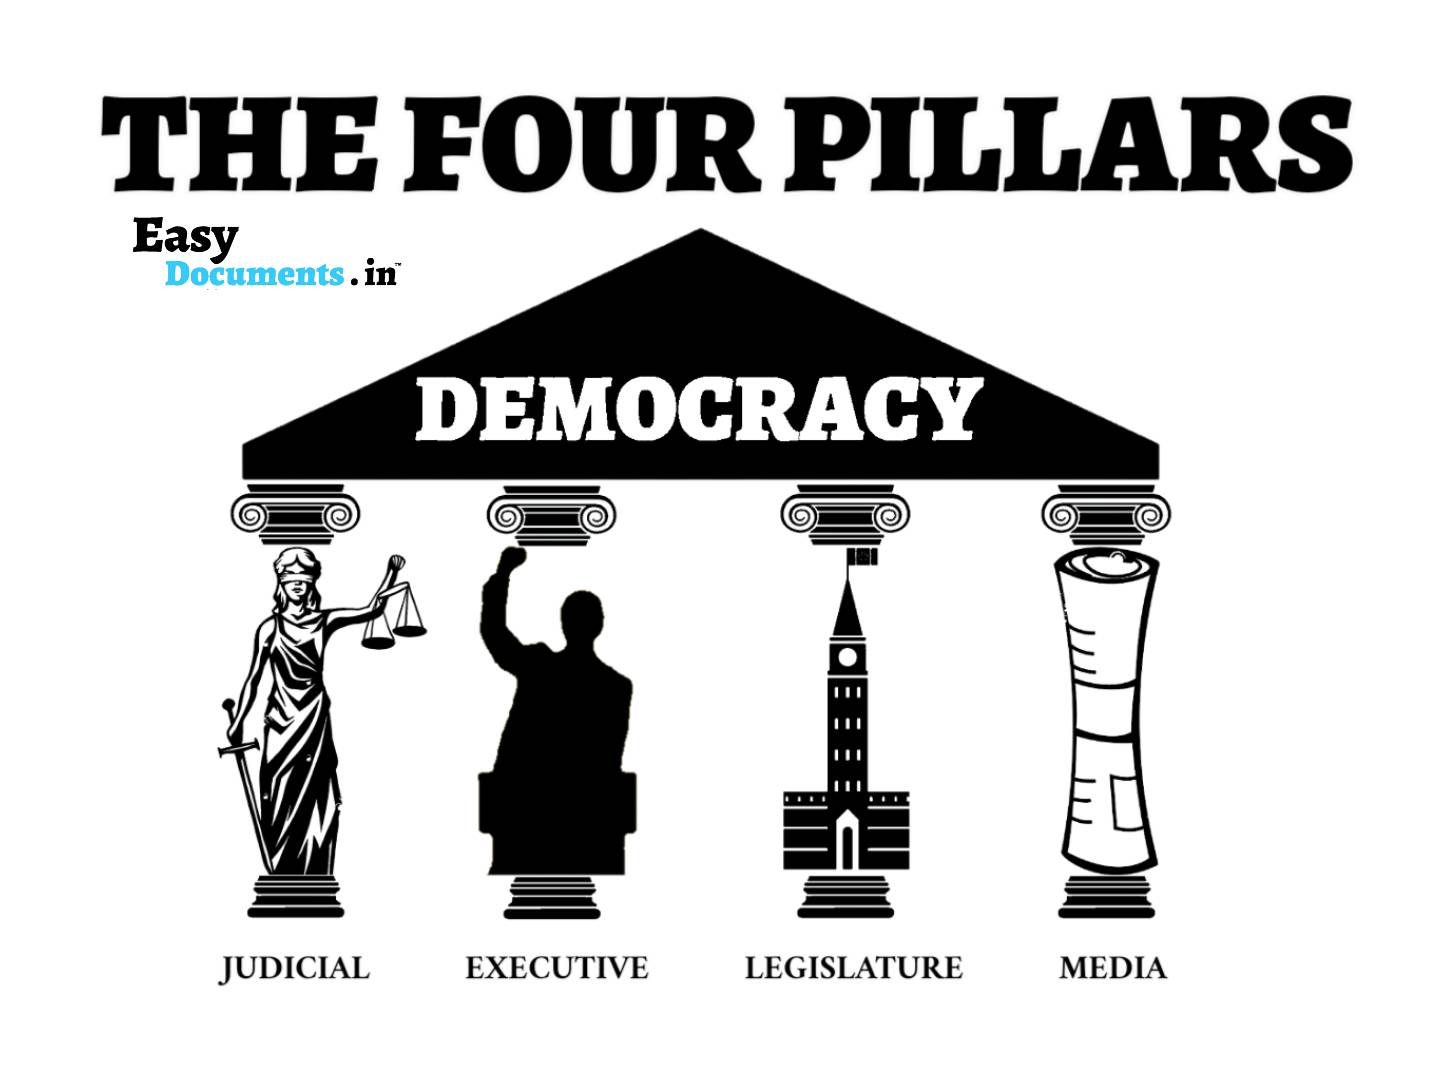 THE FOUR PILLARS OF DEMOCRACY